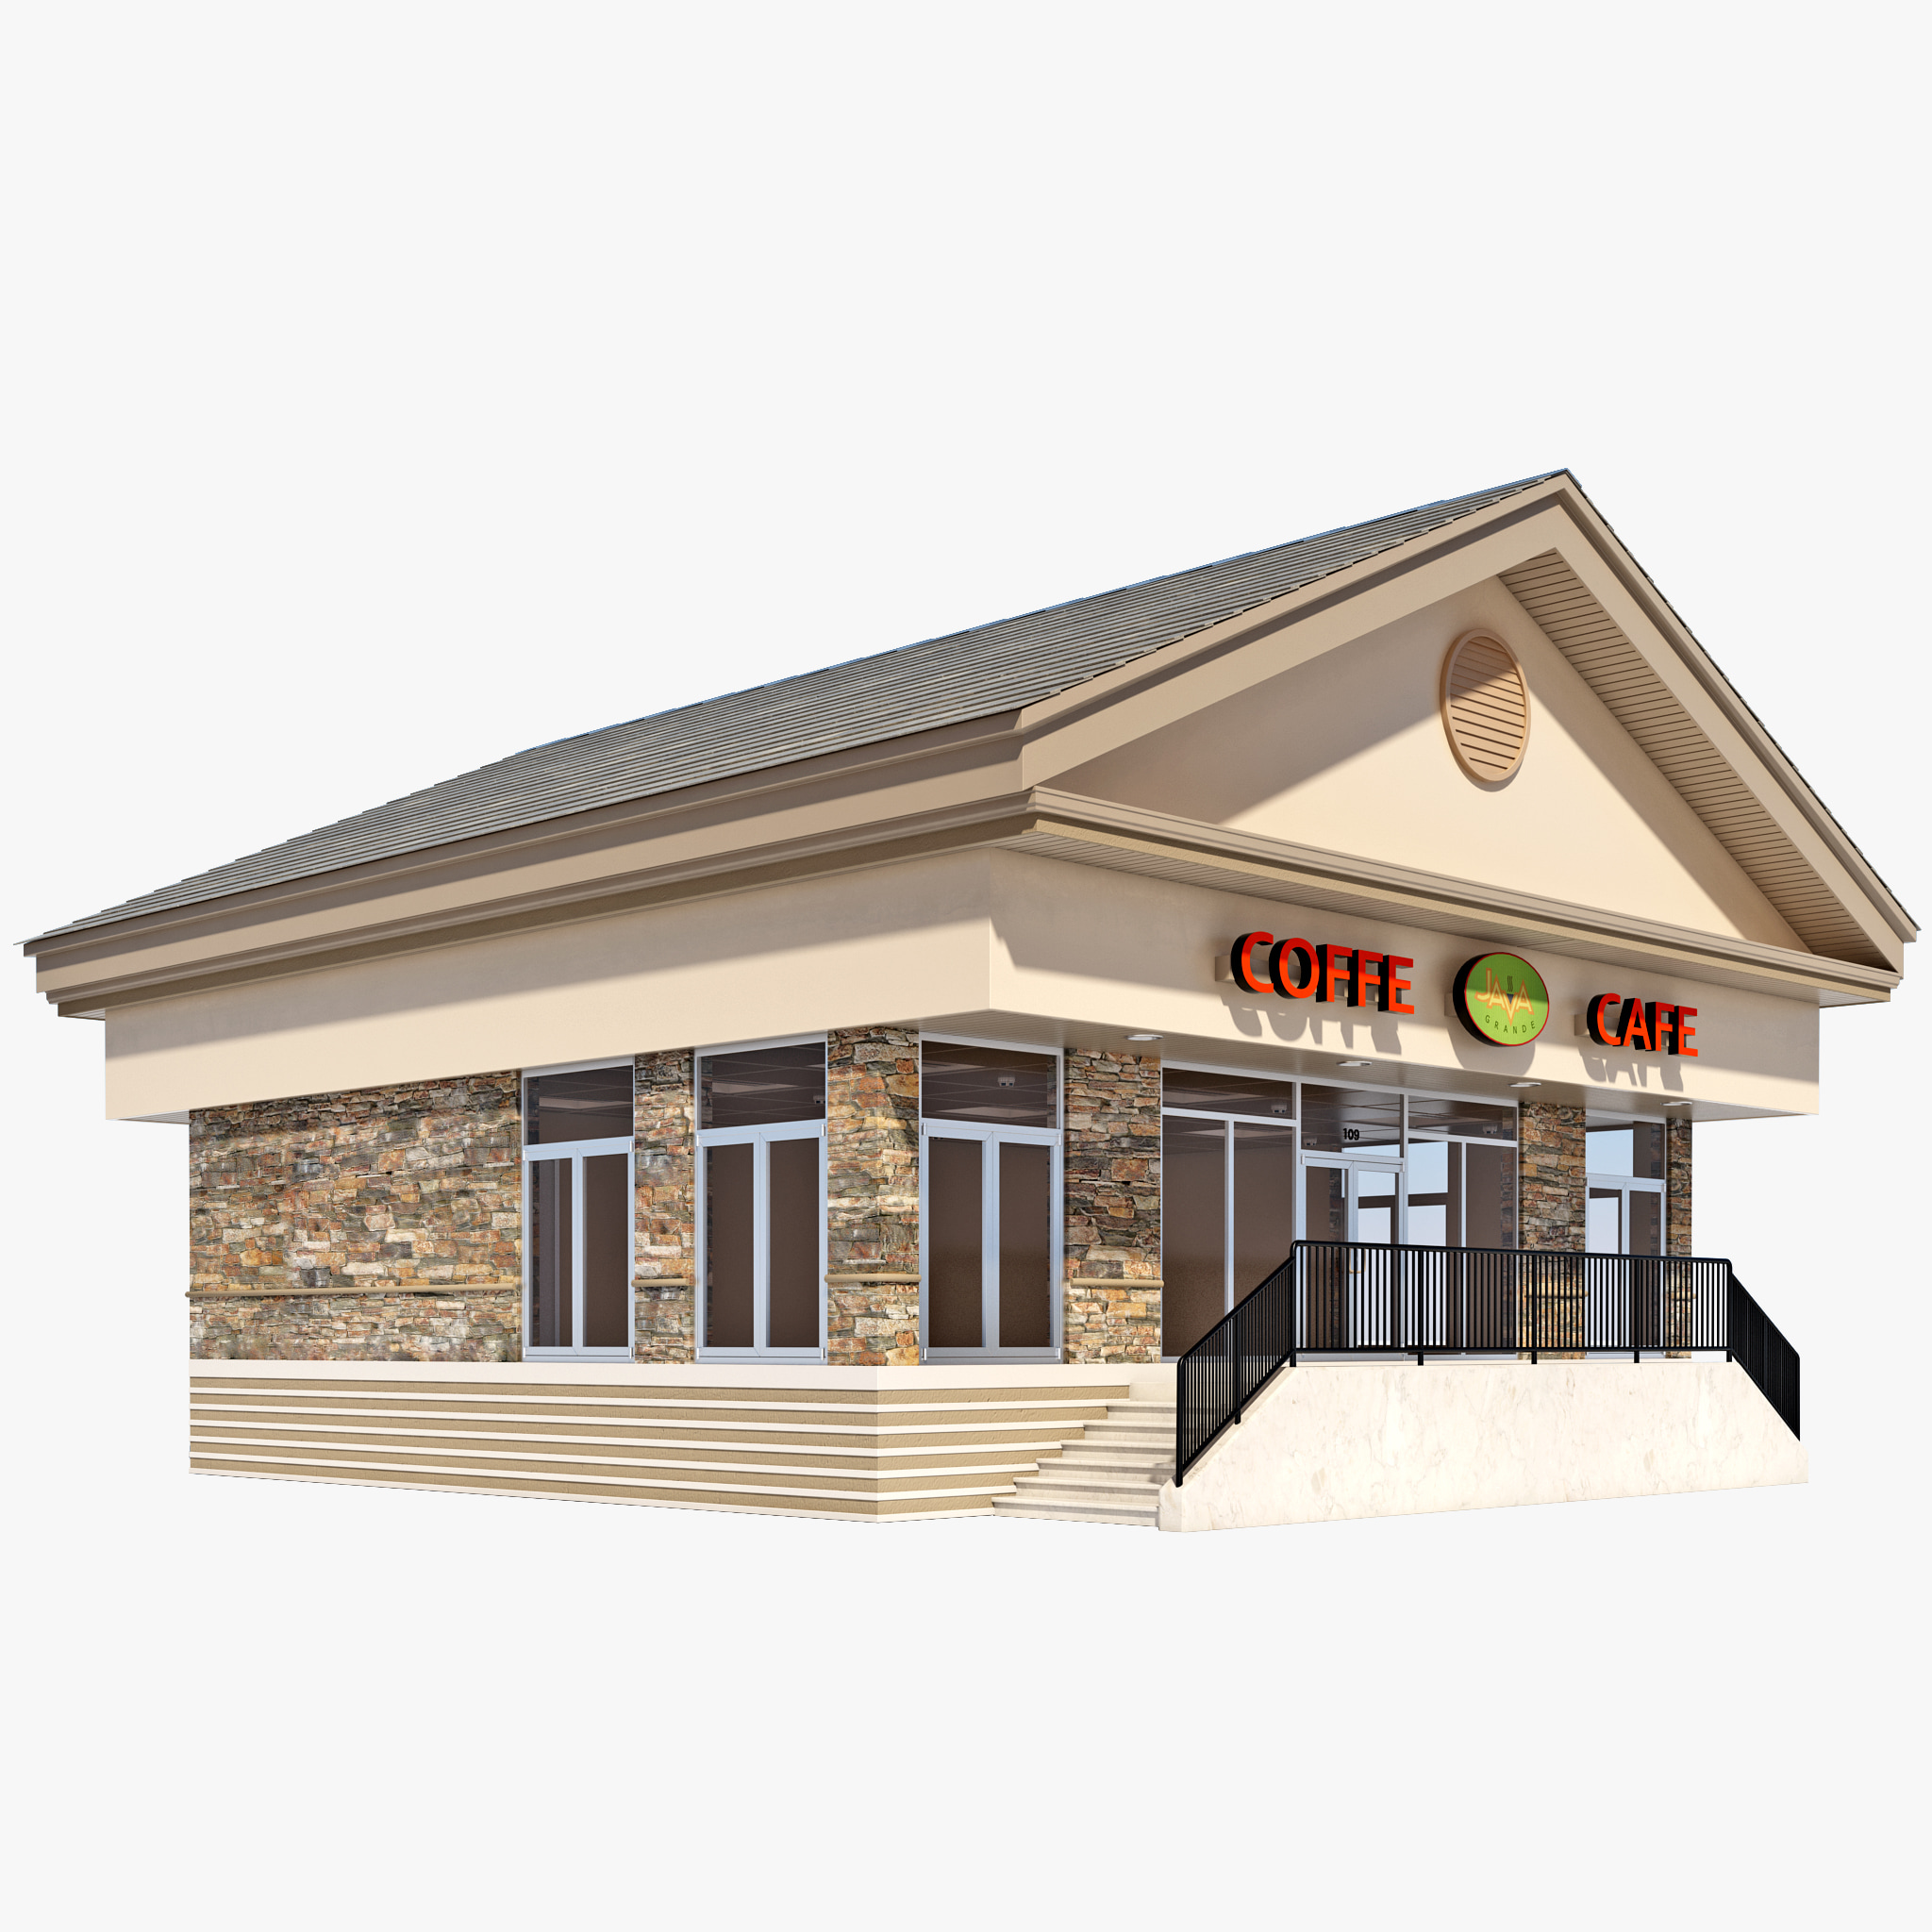 Coffee shop house 3d model for House 3d model